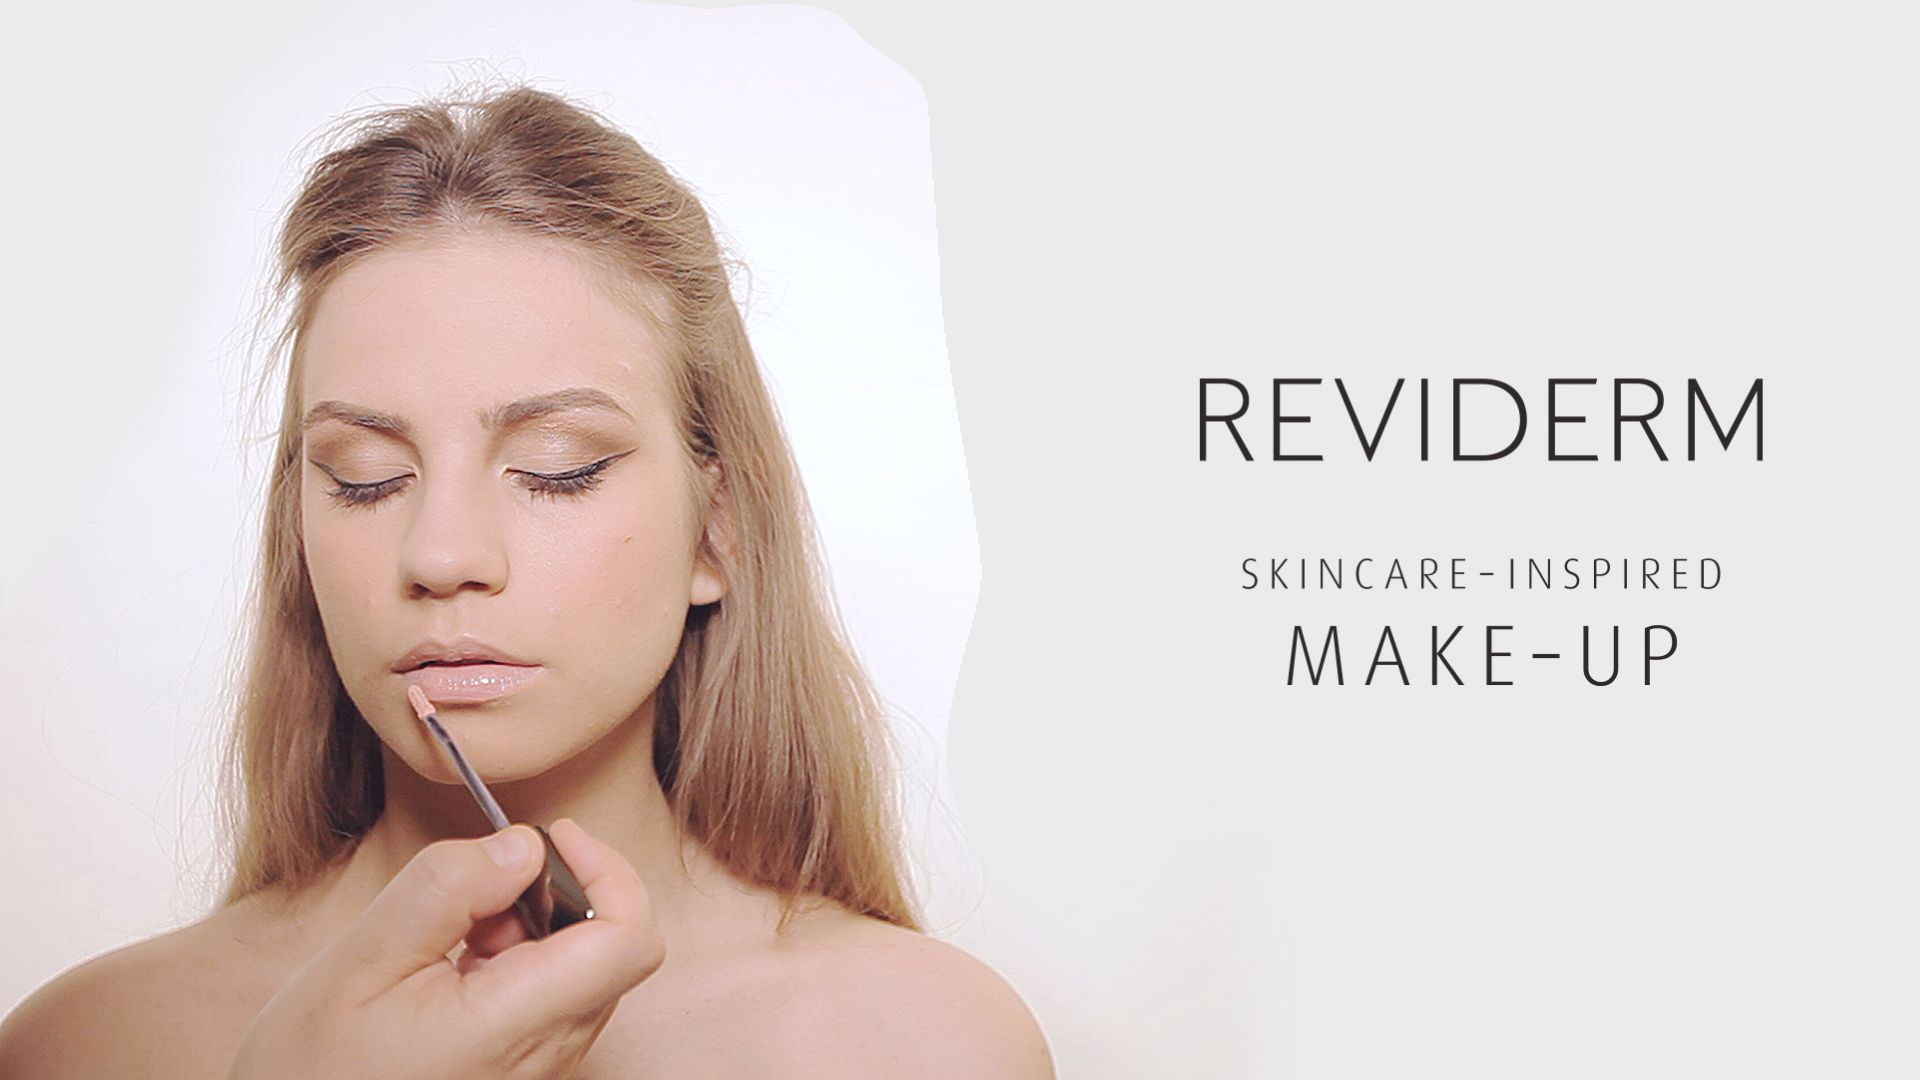 Reviderm make up minute usne 2